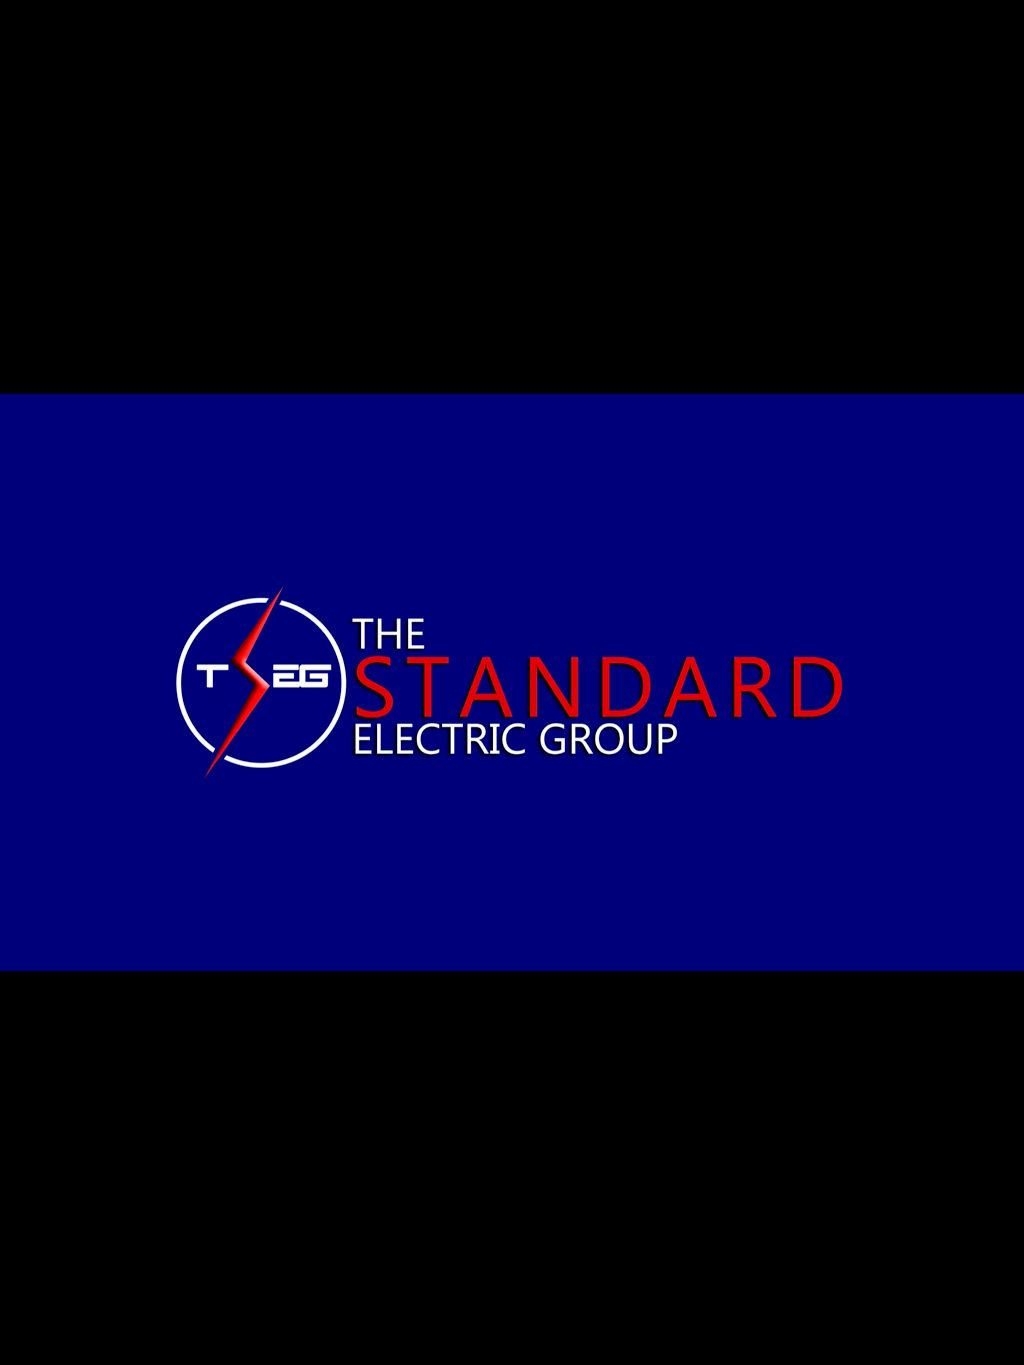 The Standard Electric